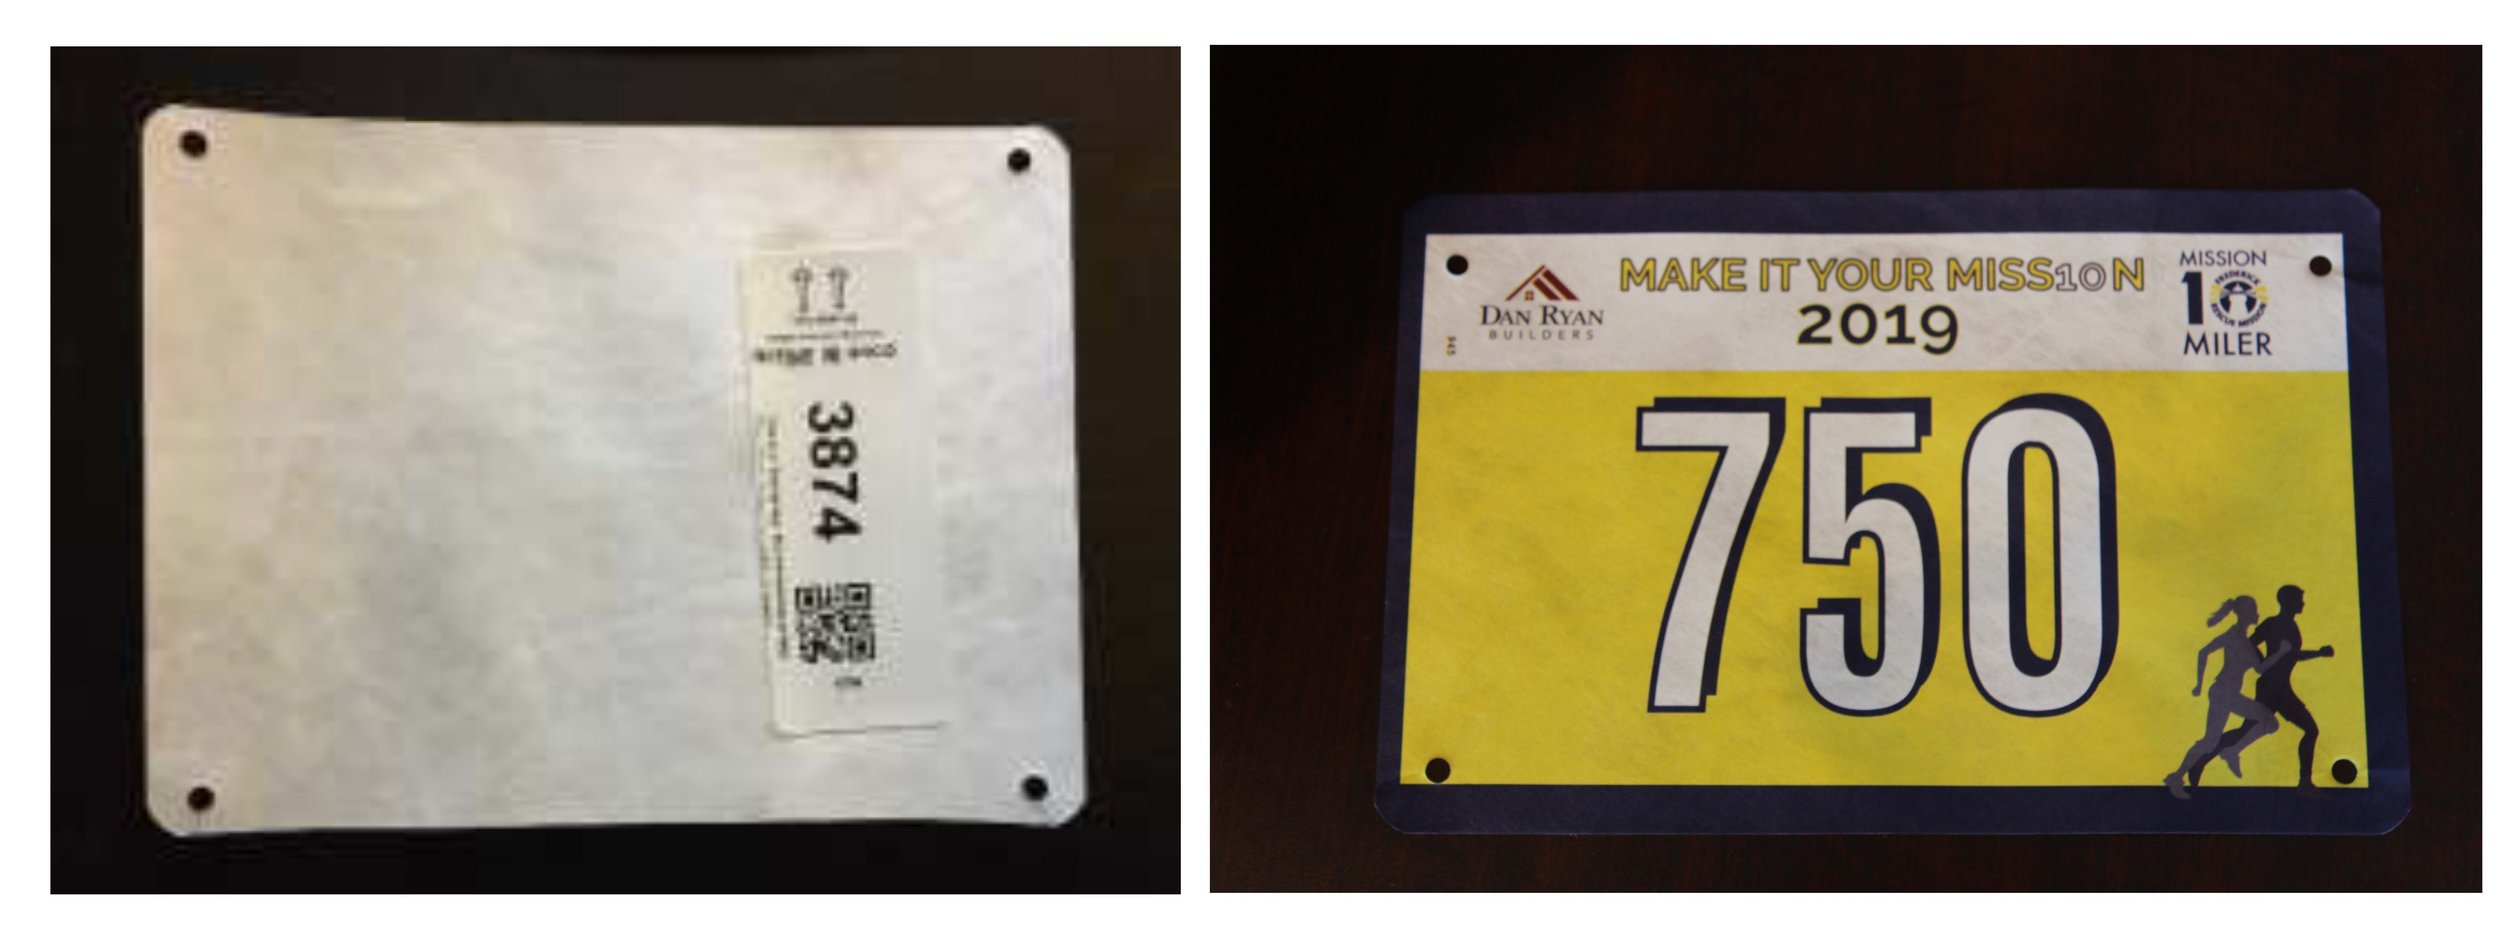 Race Bib Timing Tag Instructions-UHF 2.jpg